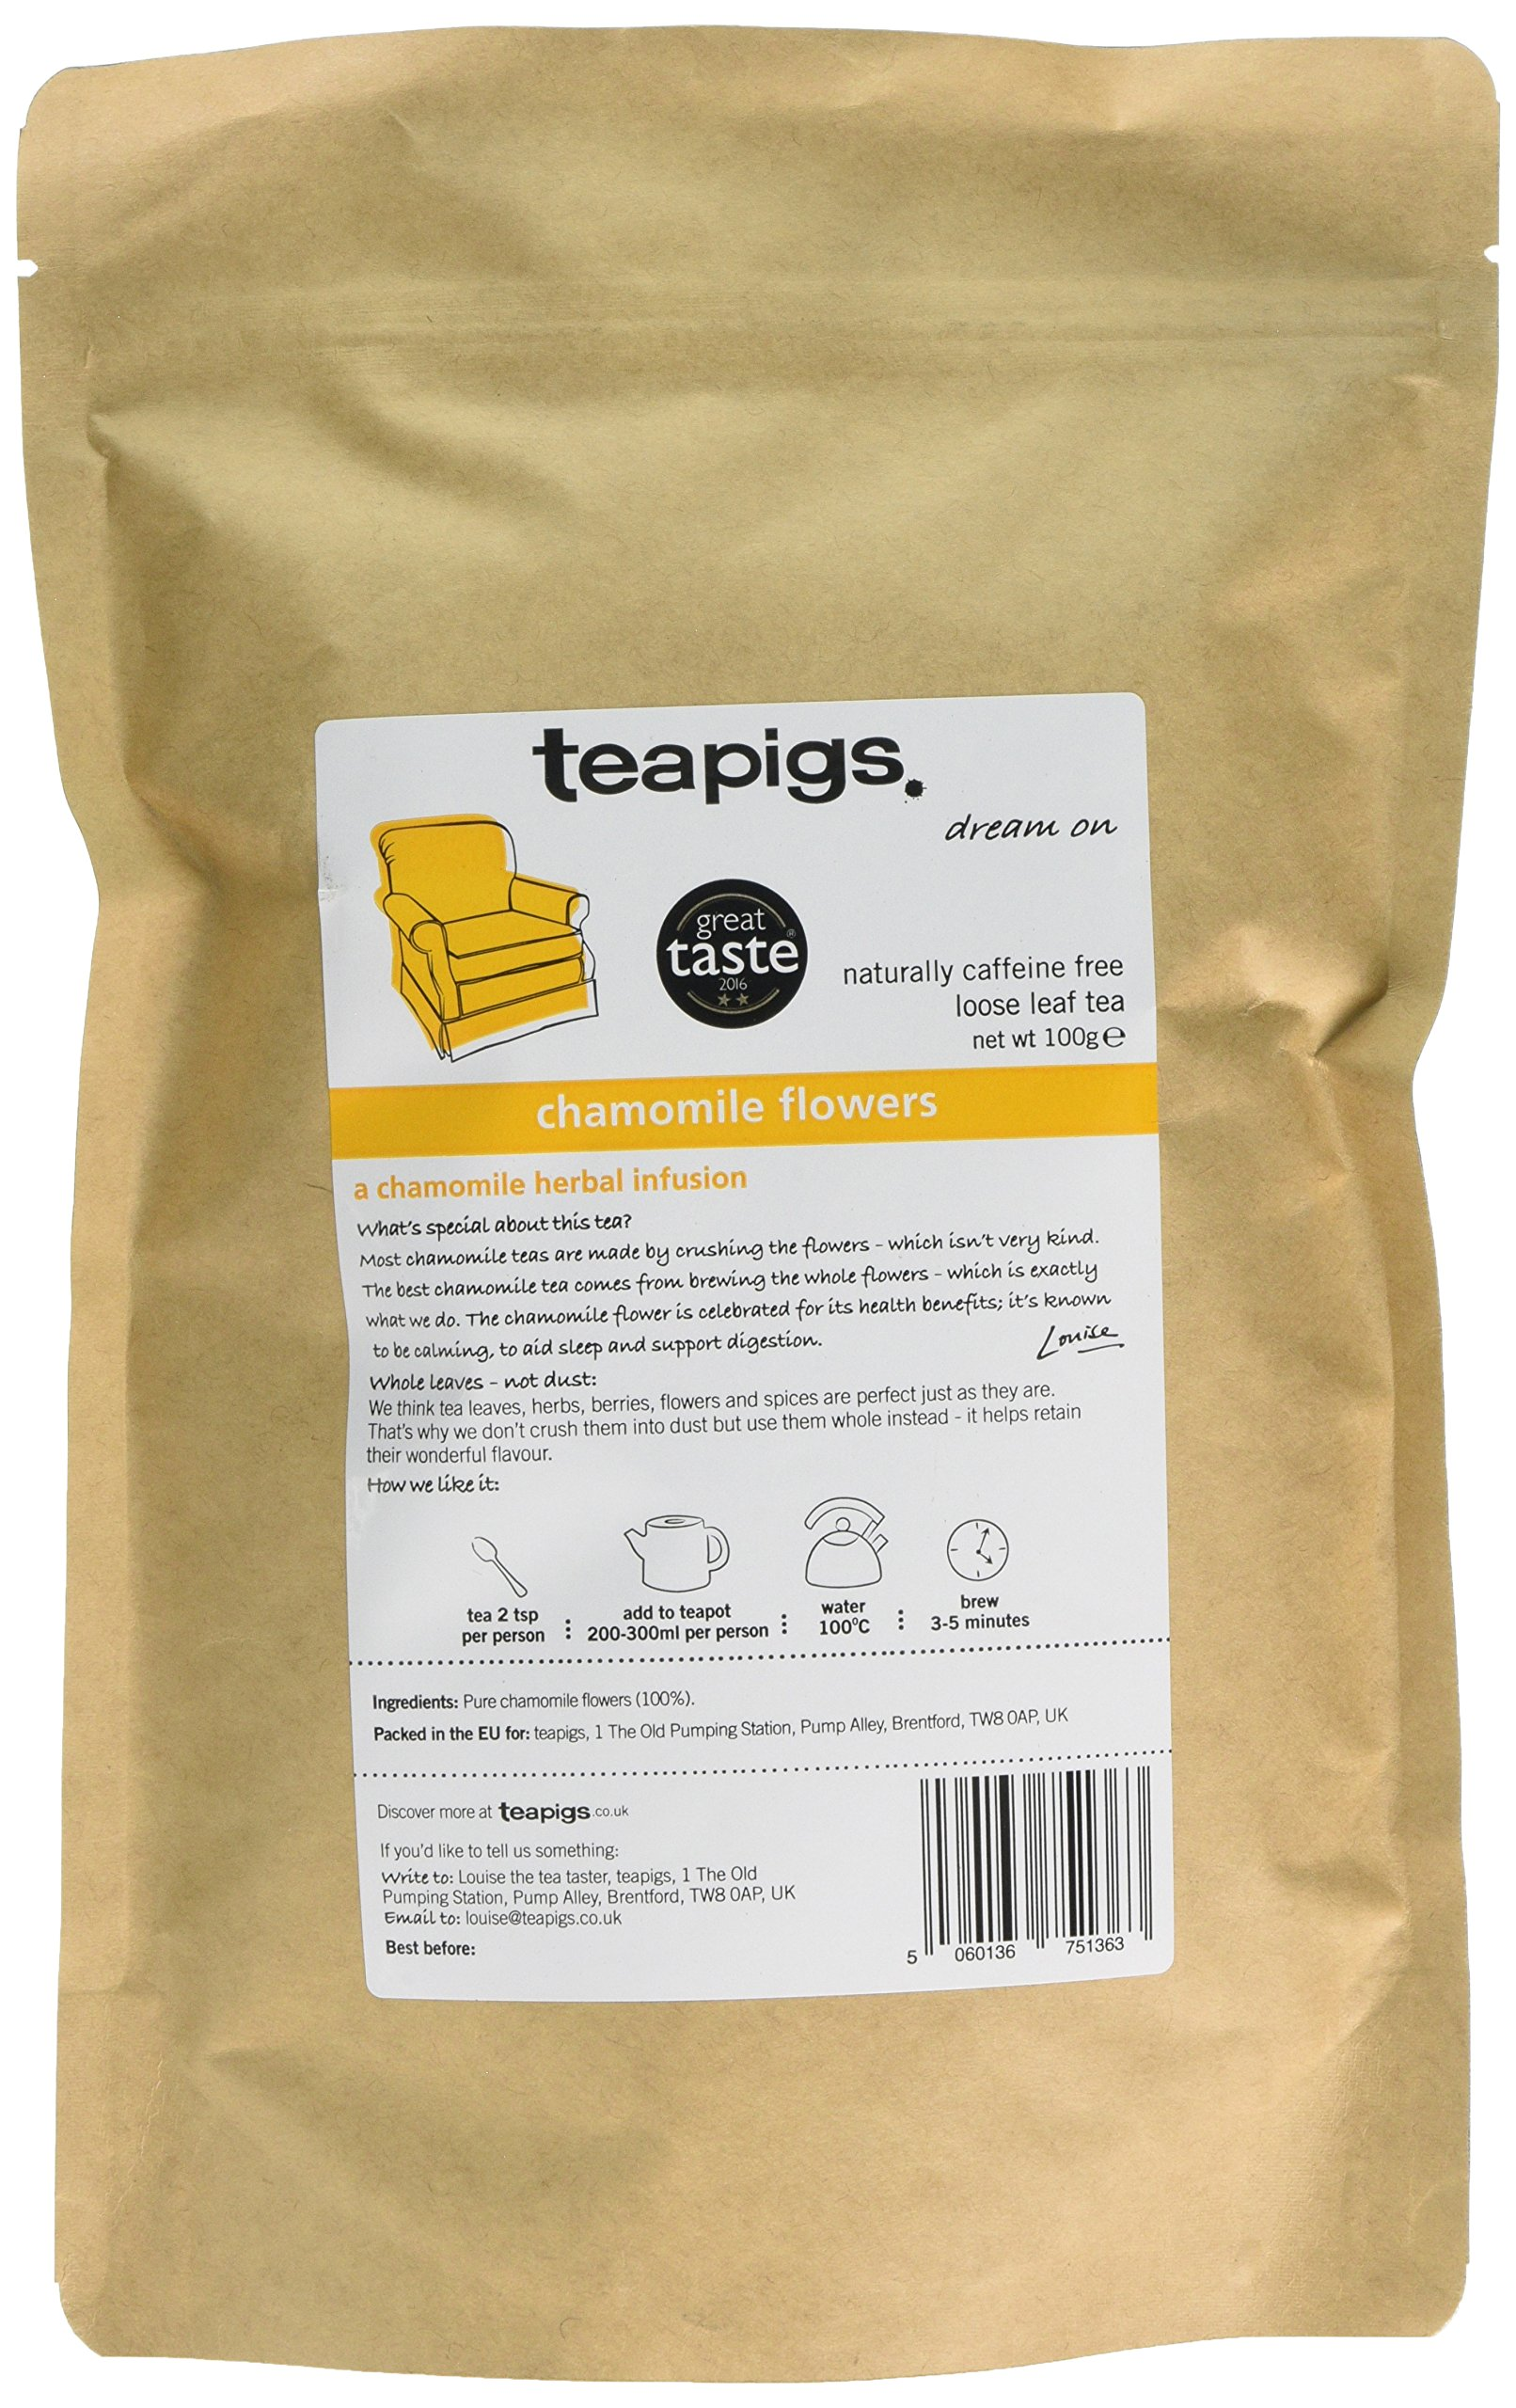 Teapigs chamomile flowers tea (infusions) (100g) (a floral tea with aromas of camomile) (brews in 3 minutes)